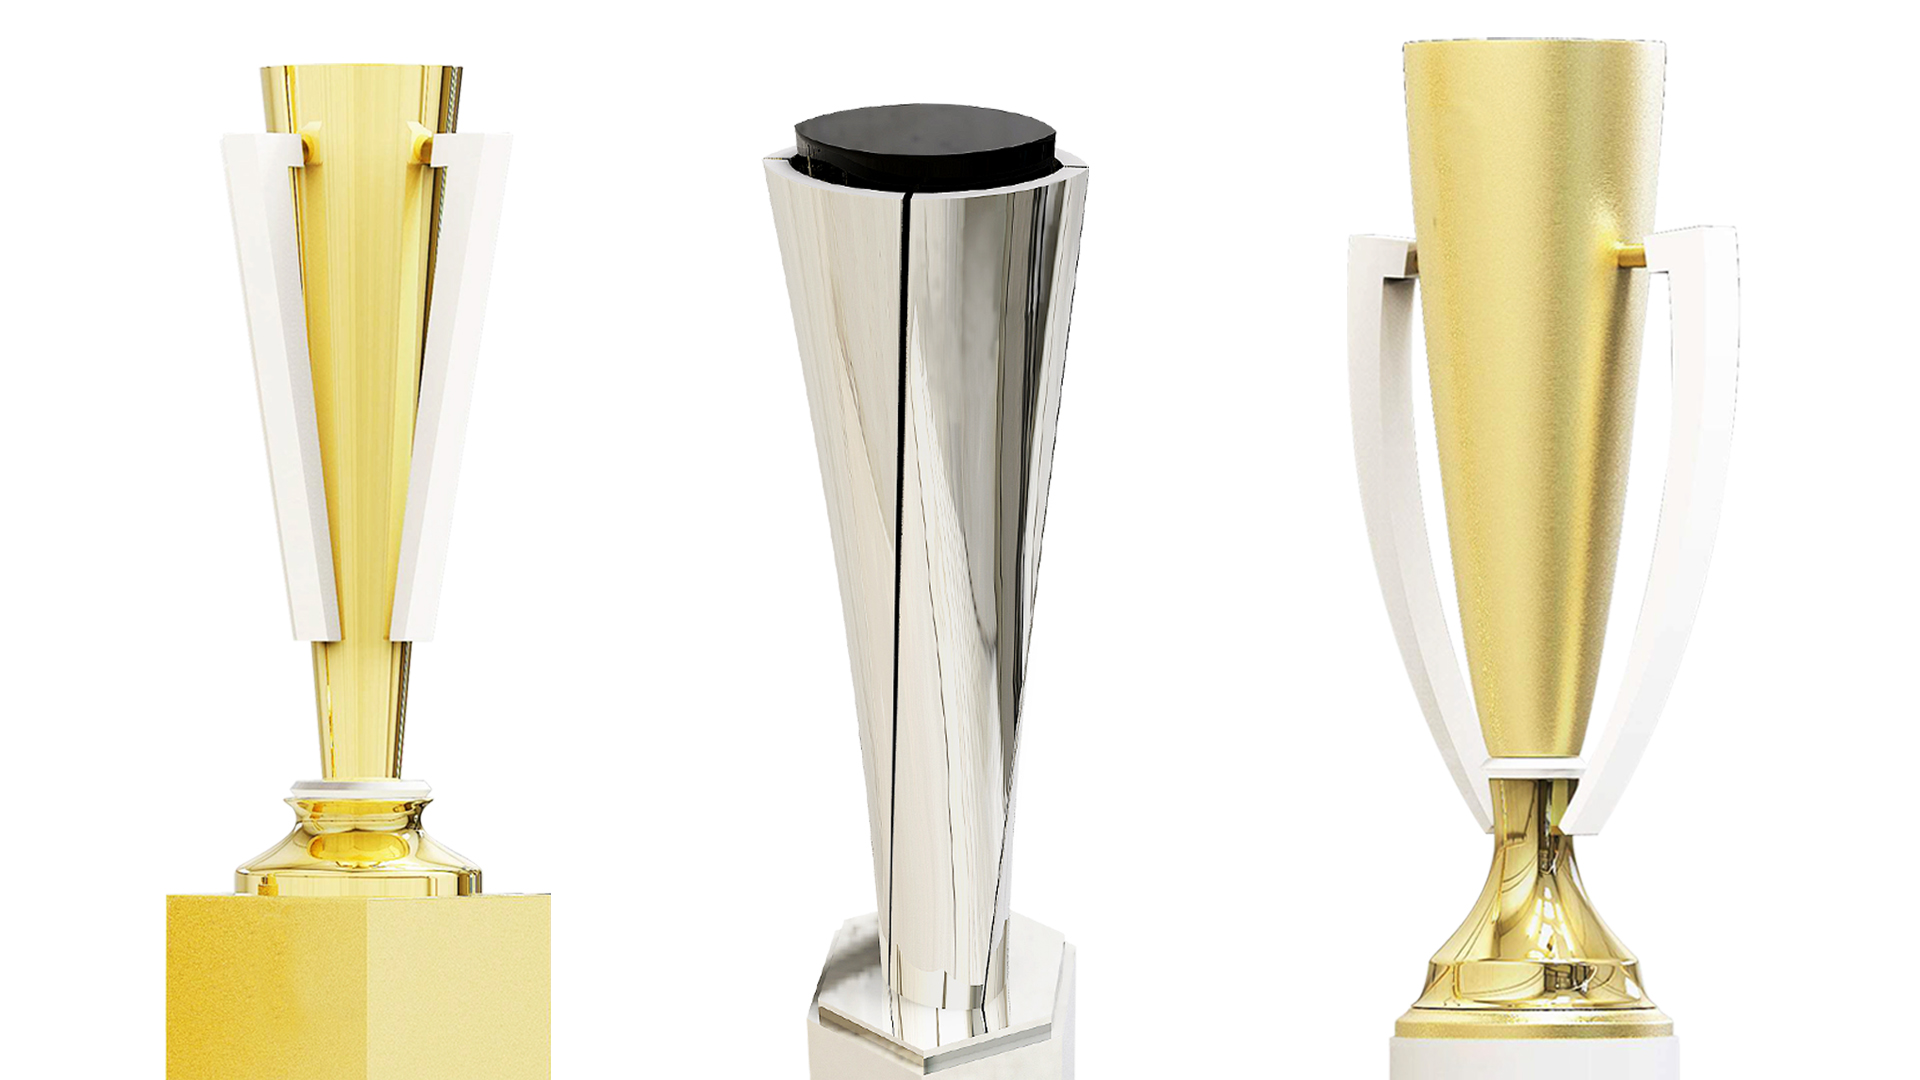 Two gold trophy cups and one silver metal award column